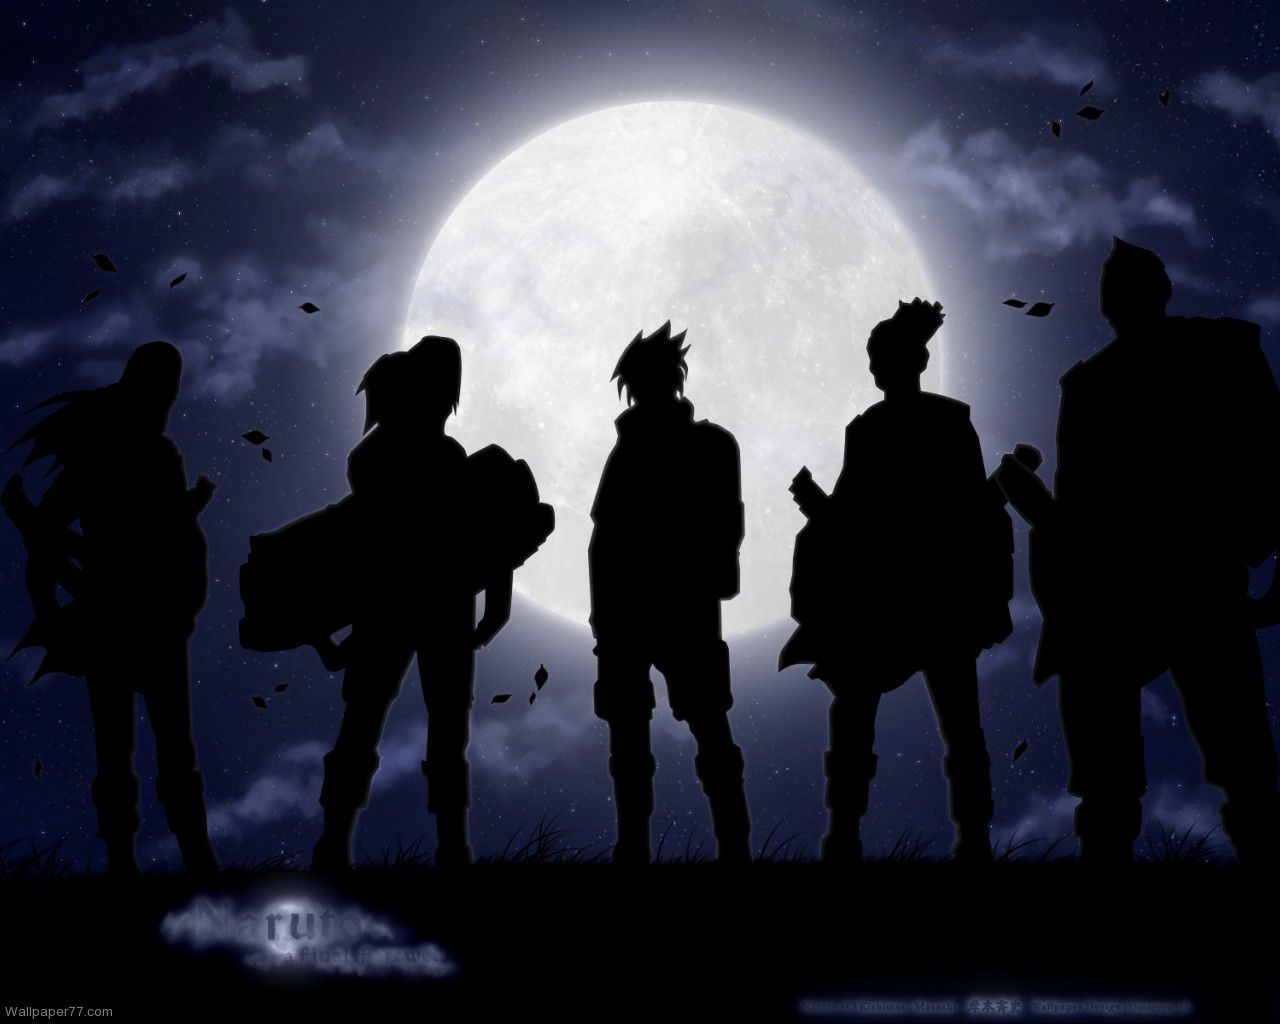 Wonderful Wallpaper Naruto Night - 697157df209e05c0a0b08fe1de37c0ea  Photograph_383514.jpg